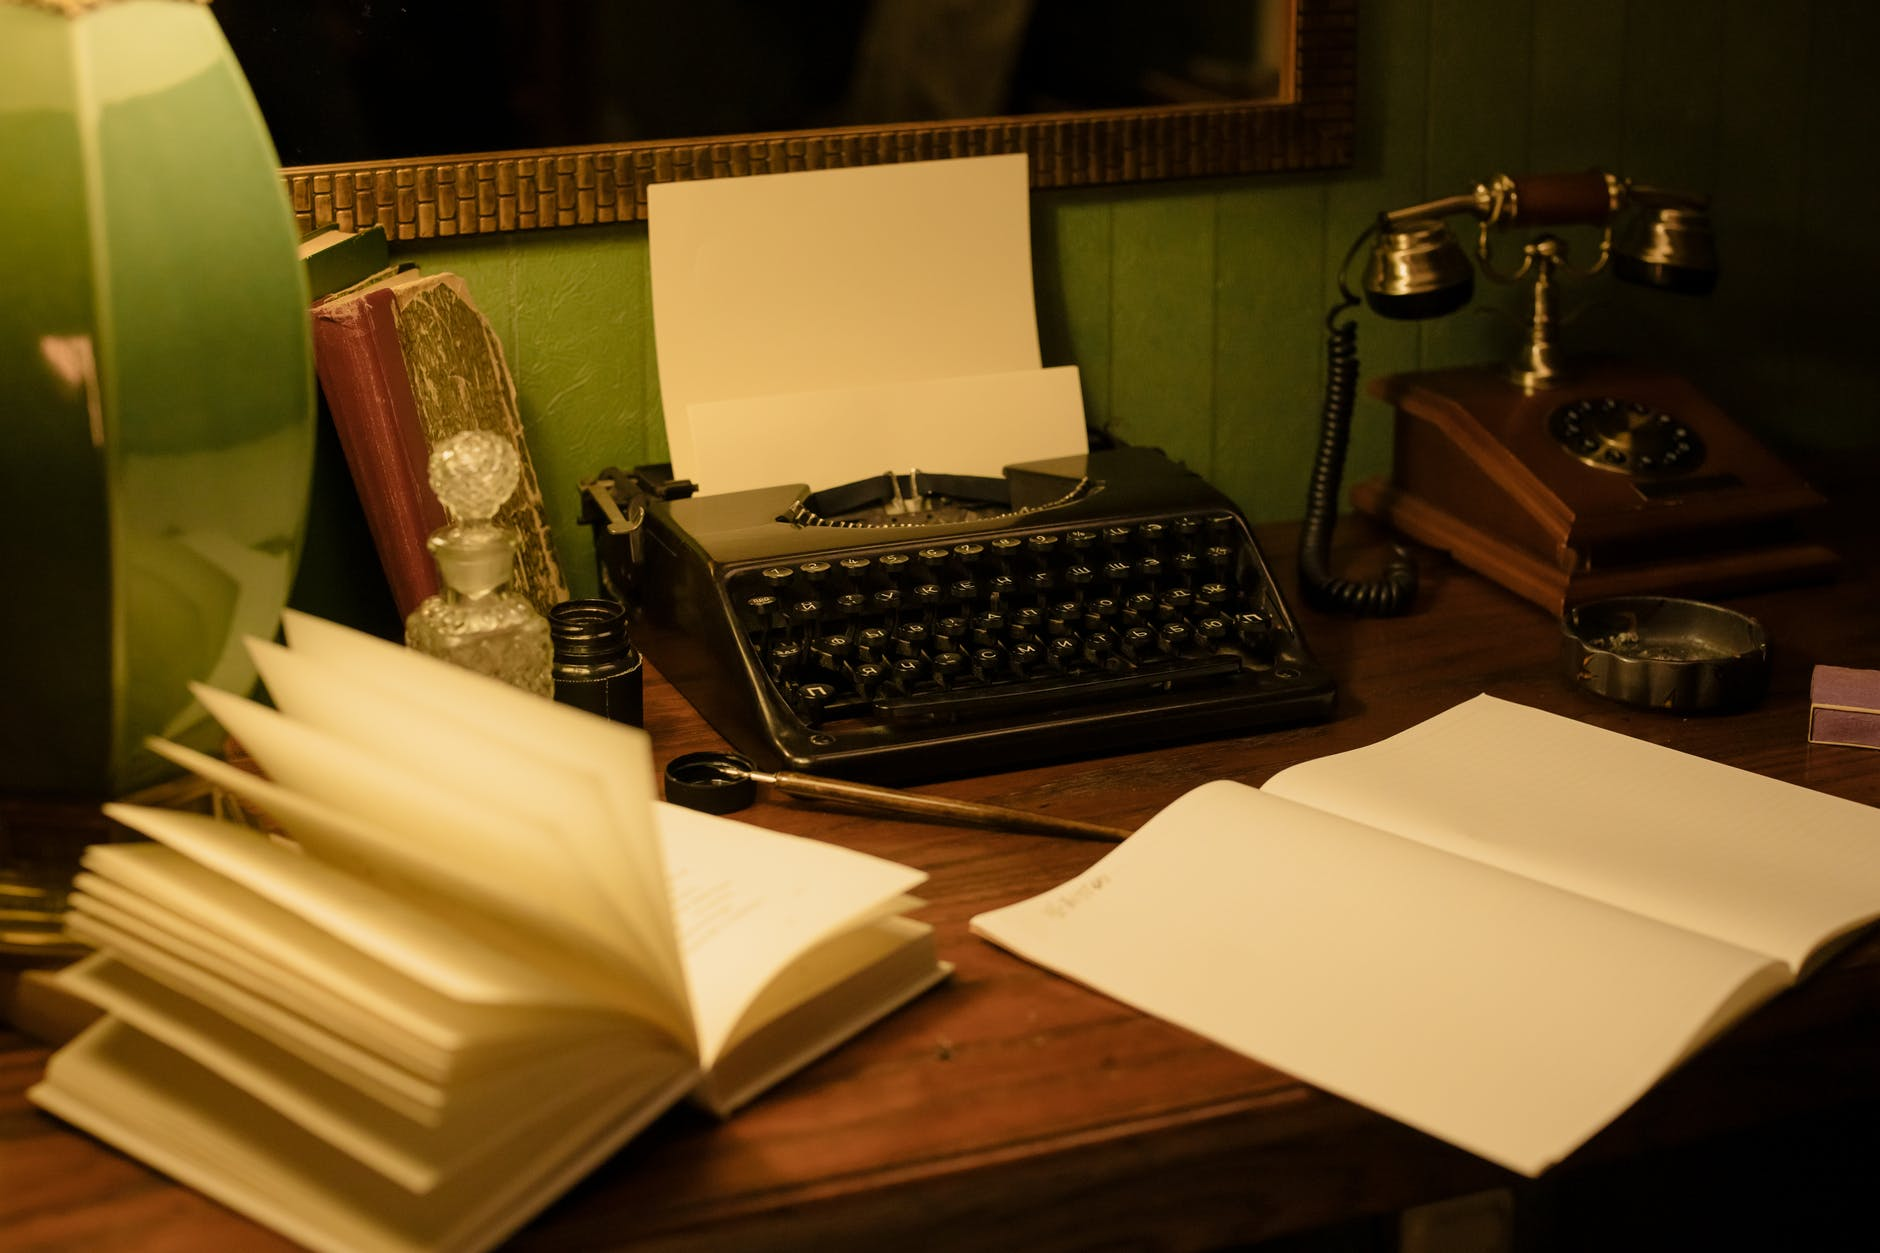 vintage typewriter and telephone on the table